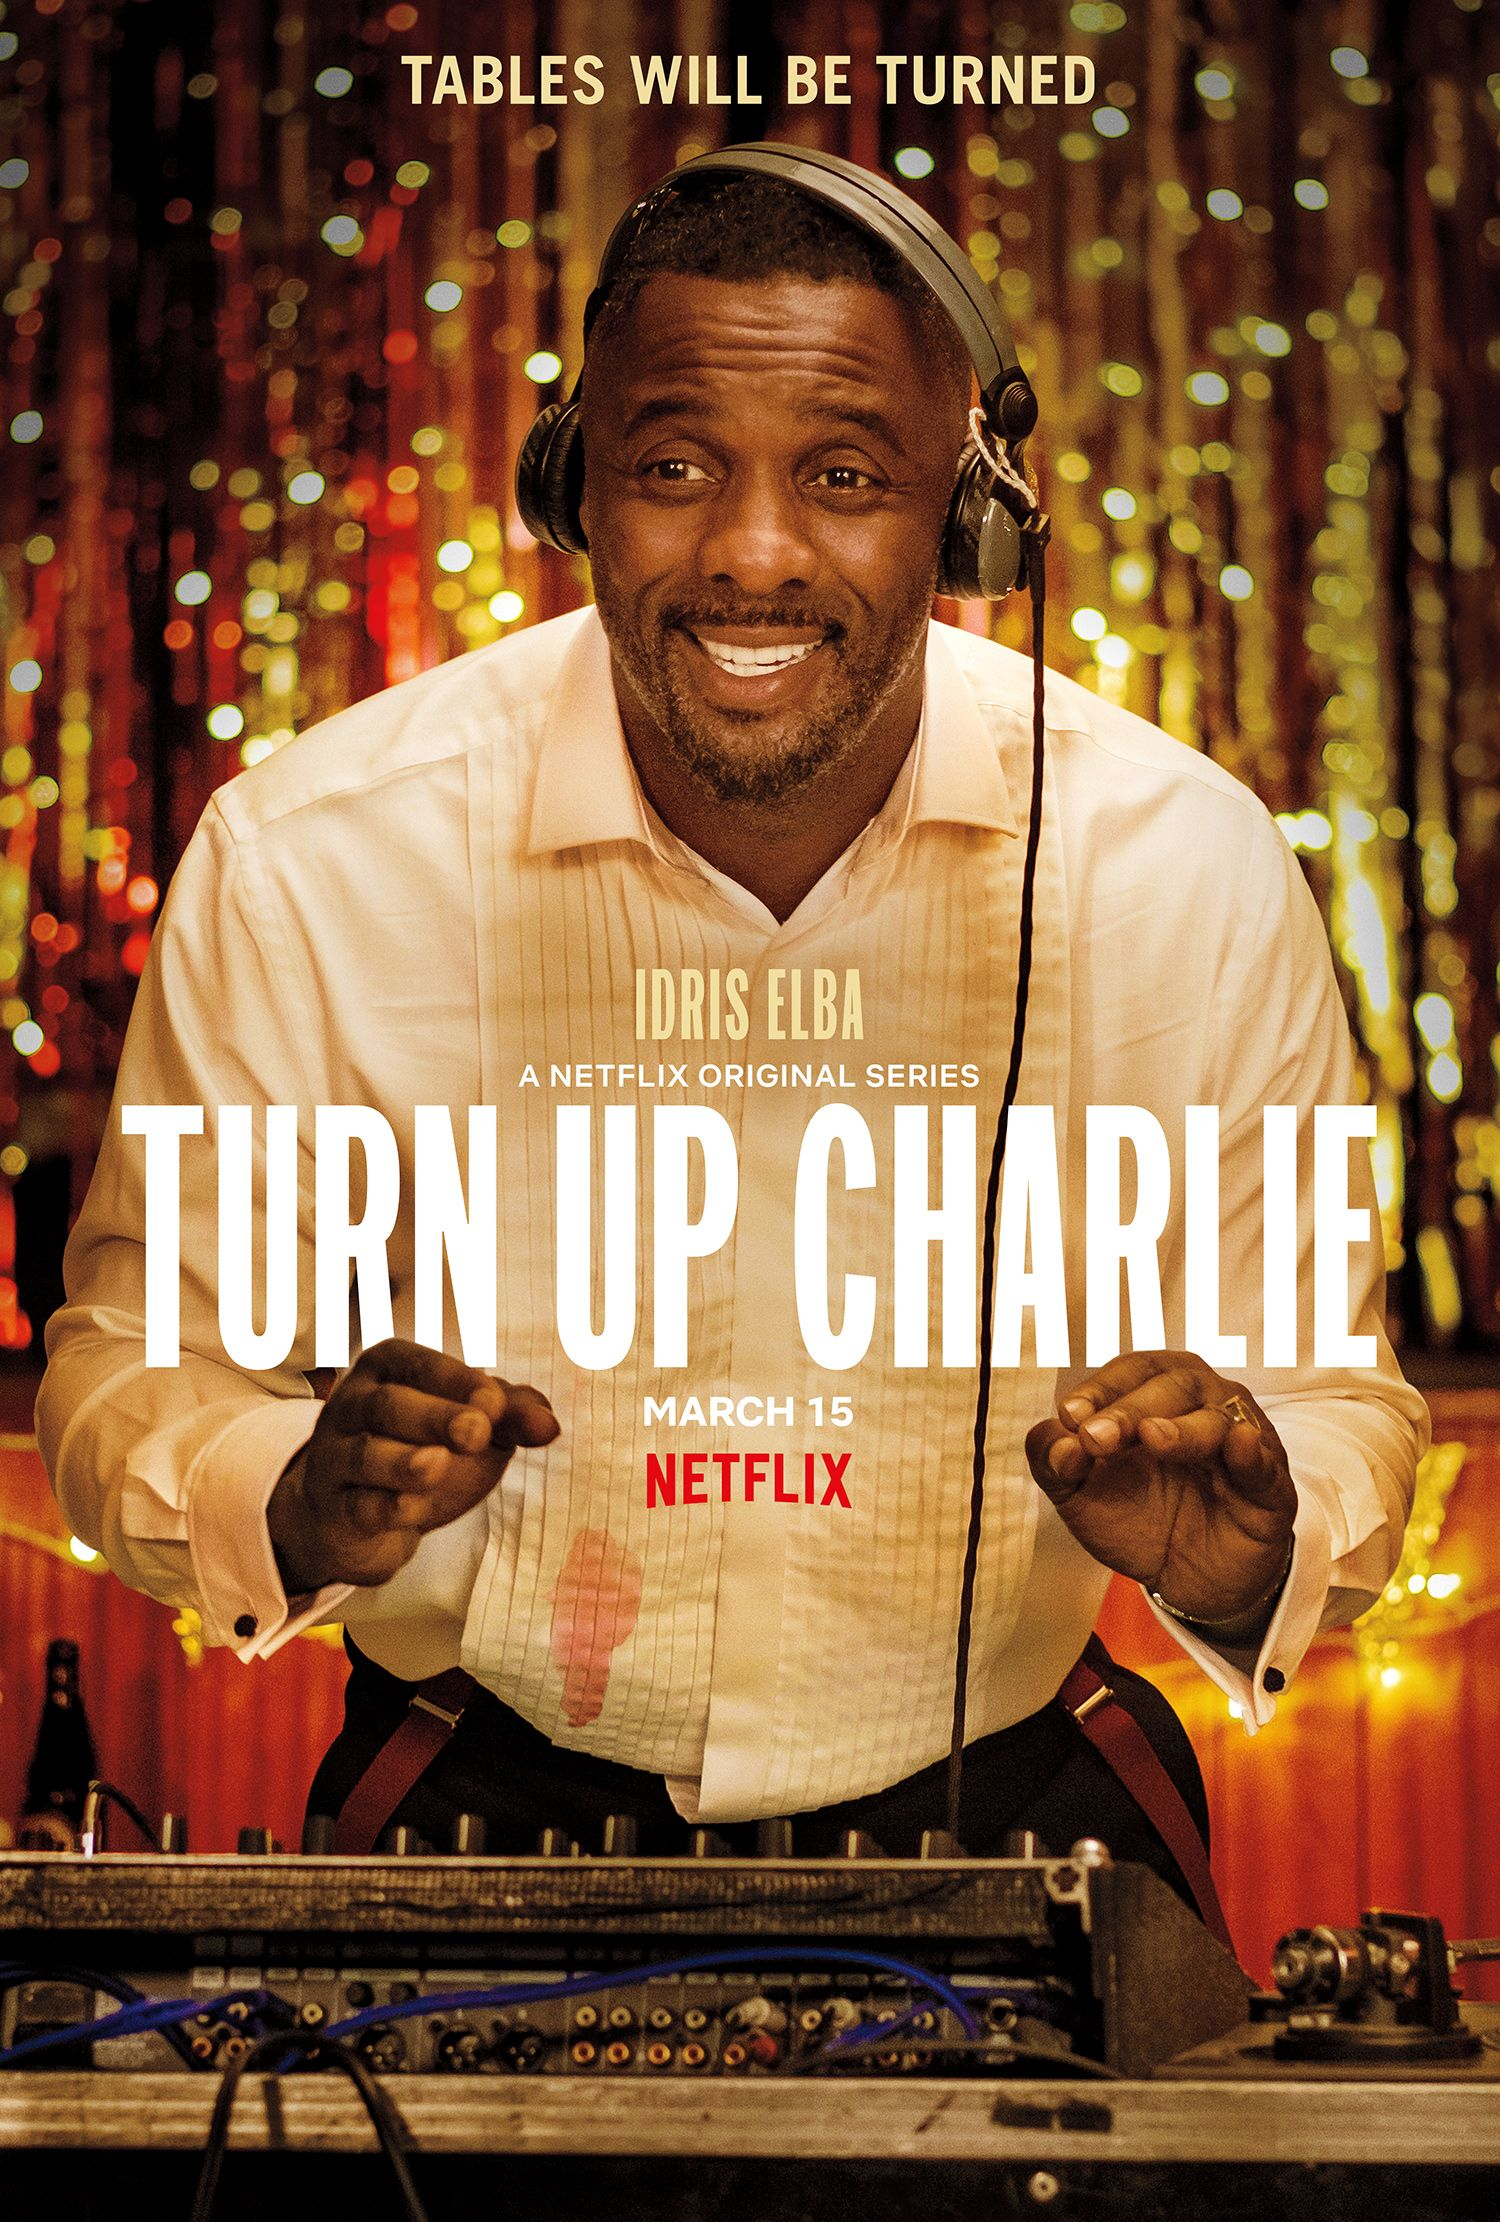 Idris Elba on Turn Up Charlie and Wanting to Do More Comedy